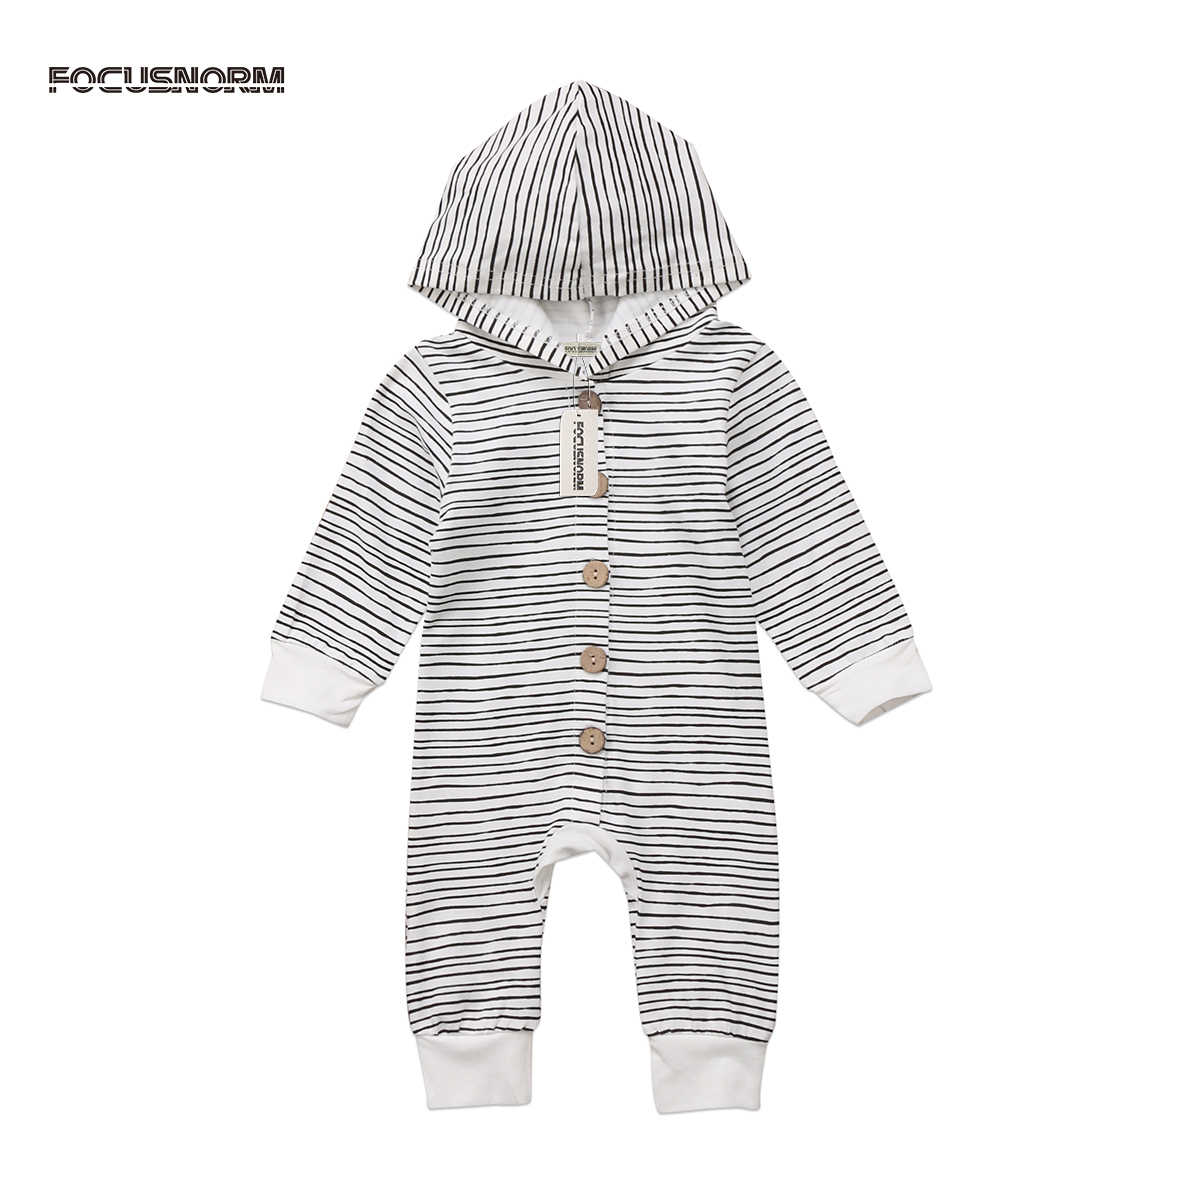 2eda1a7fe Detail Feedback Questions about Baby Boy Girl Warm Infant Romper ...